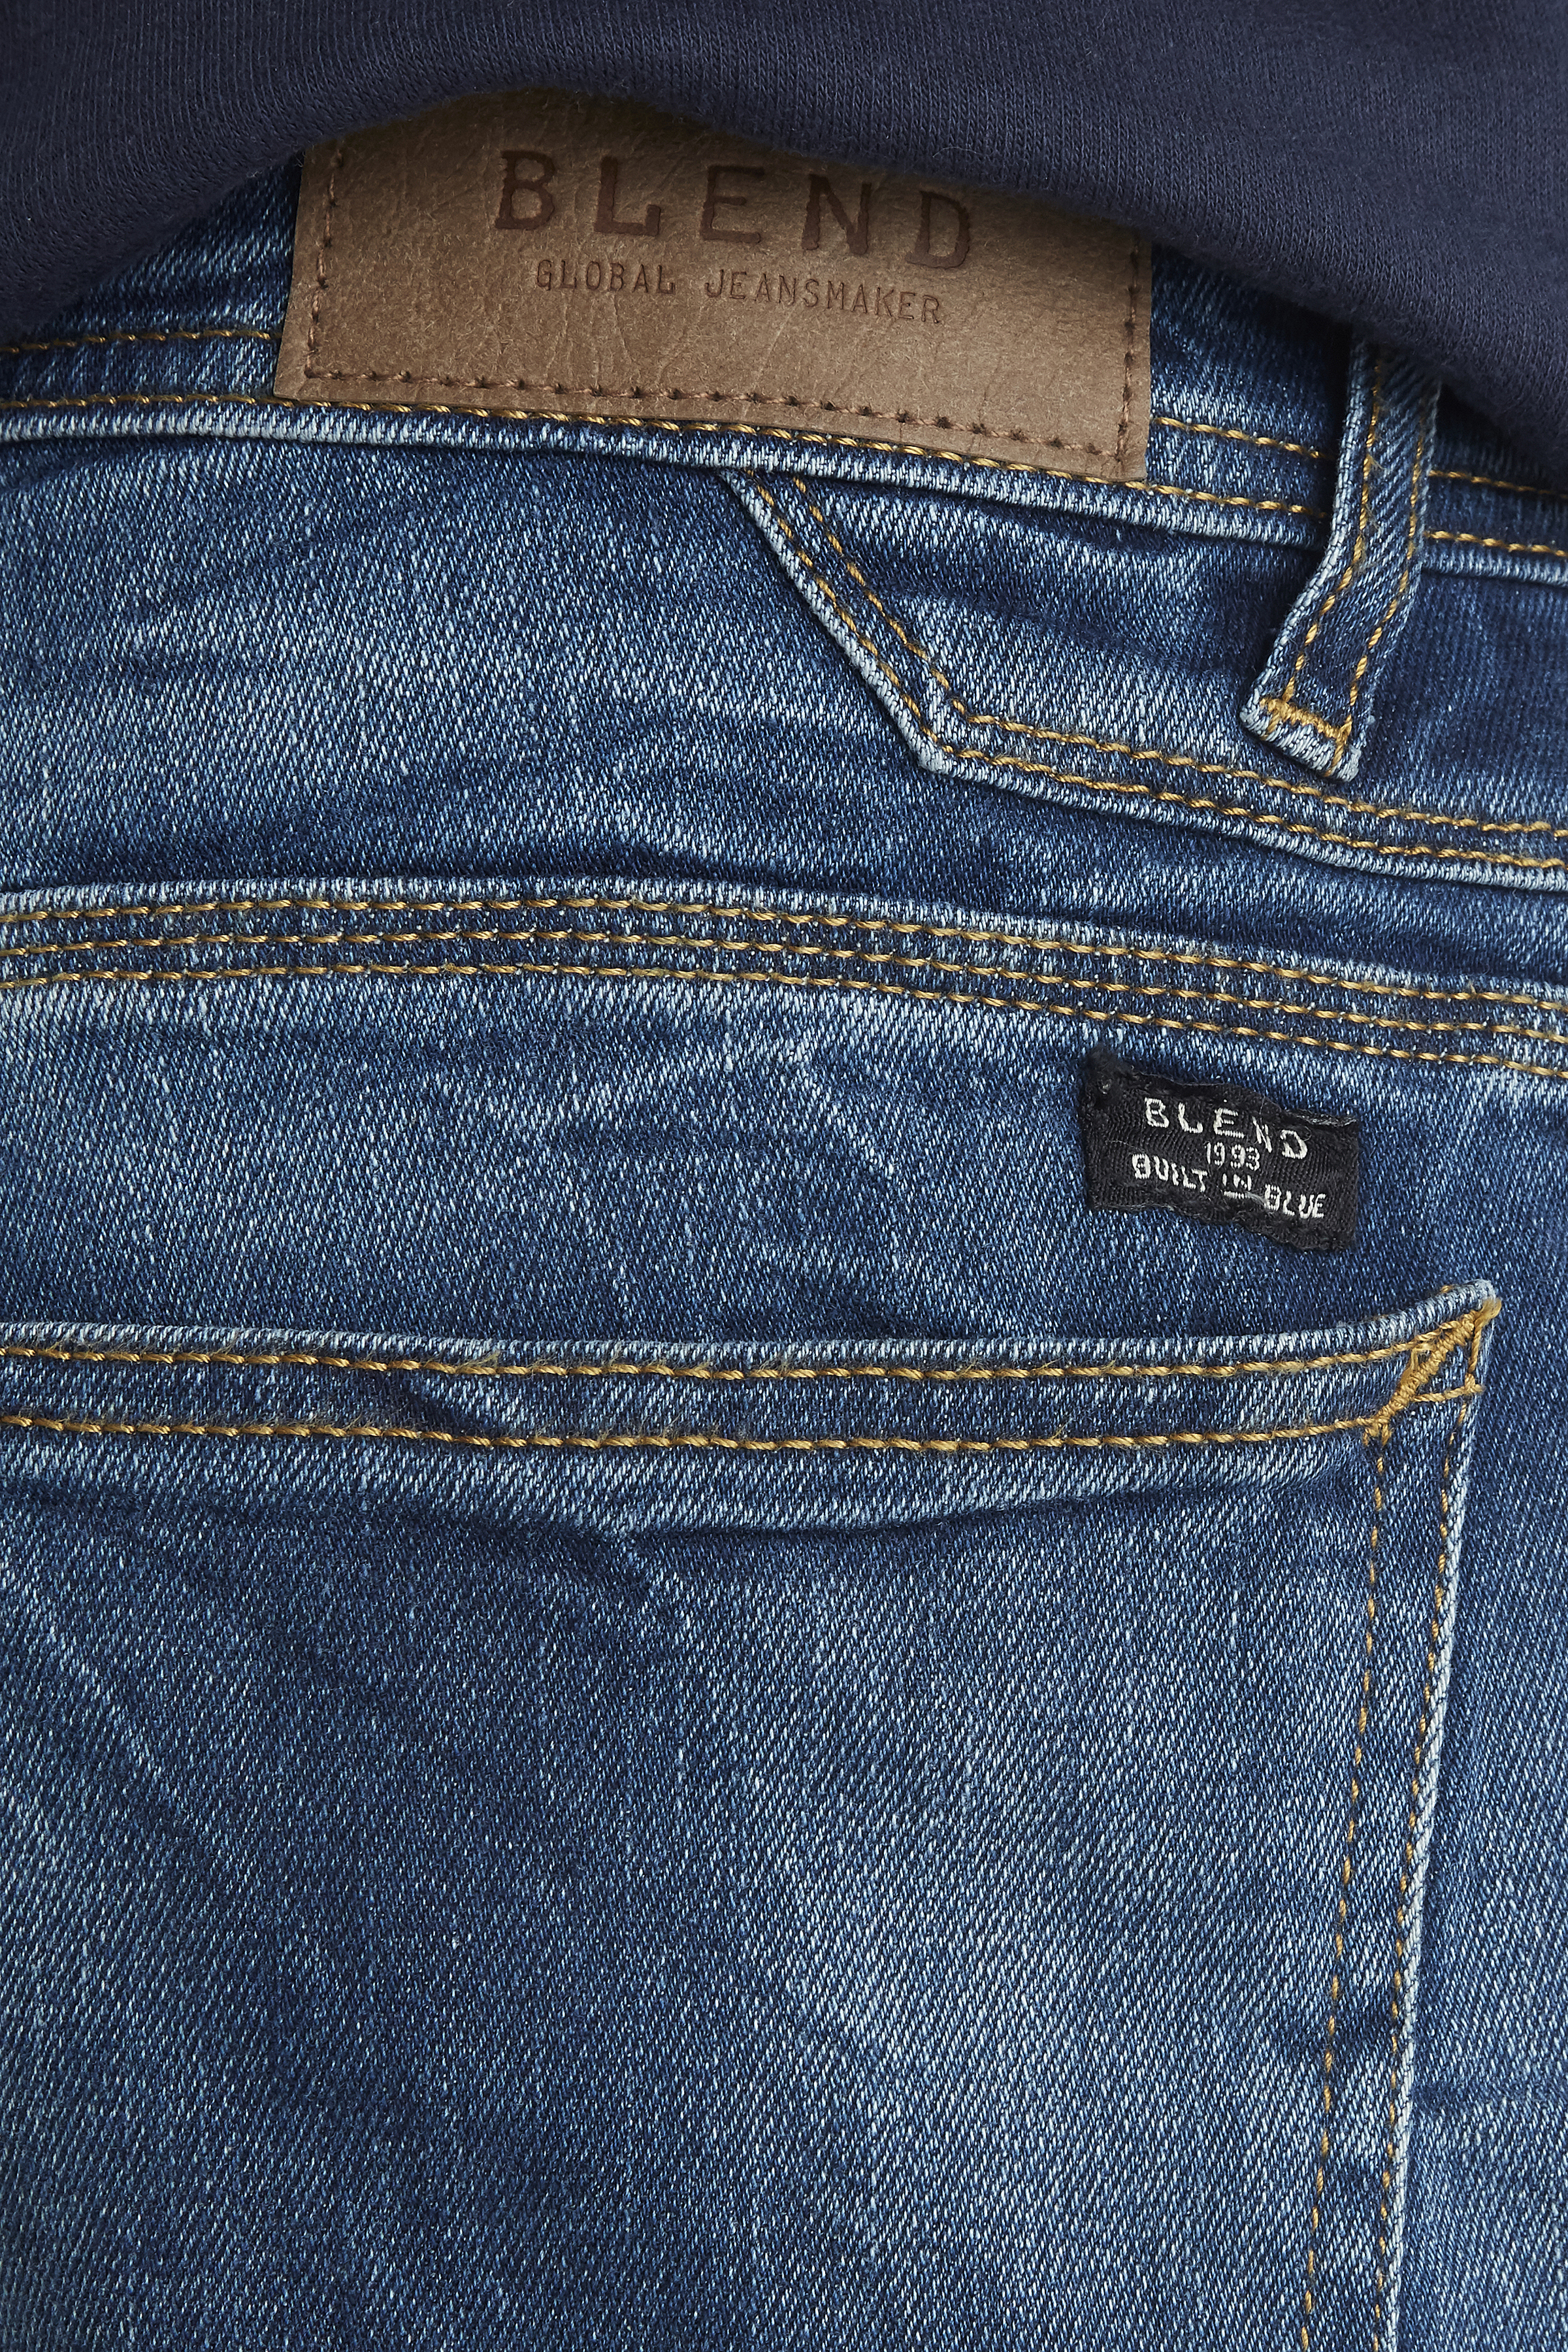 Denim Middle blue Rock jeans – Køb Denim Middle blue Rock jeans fra str. 29-36 her